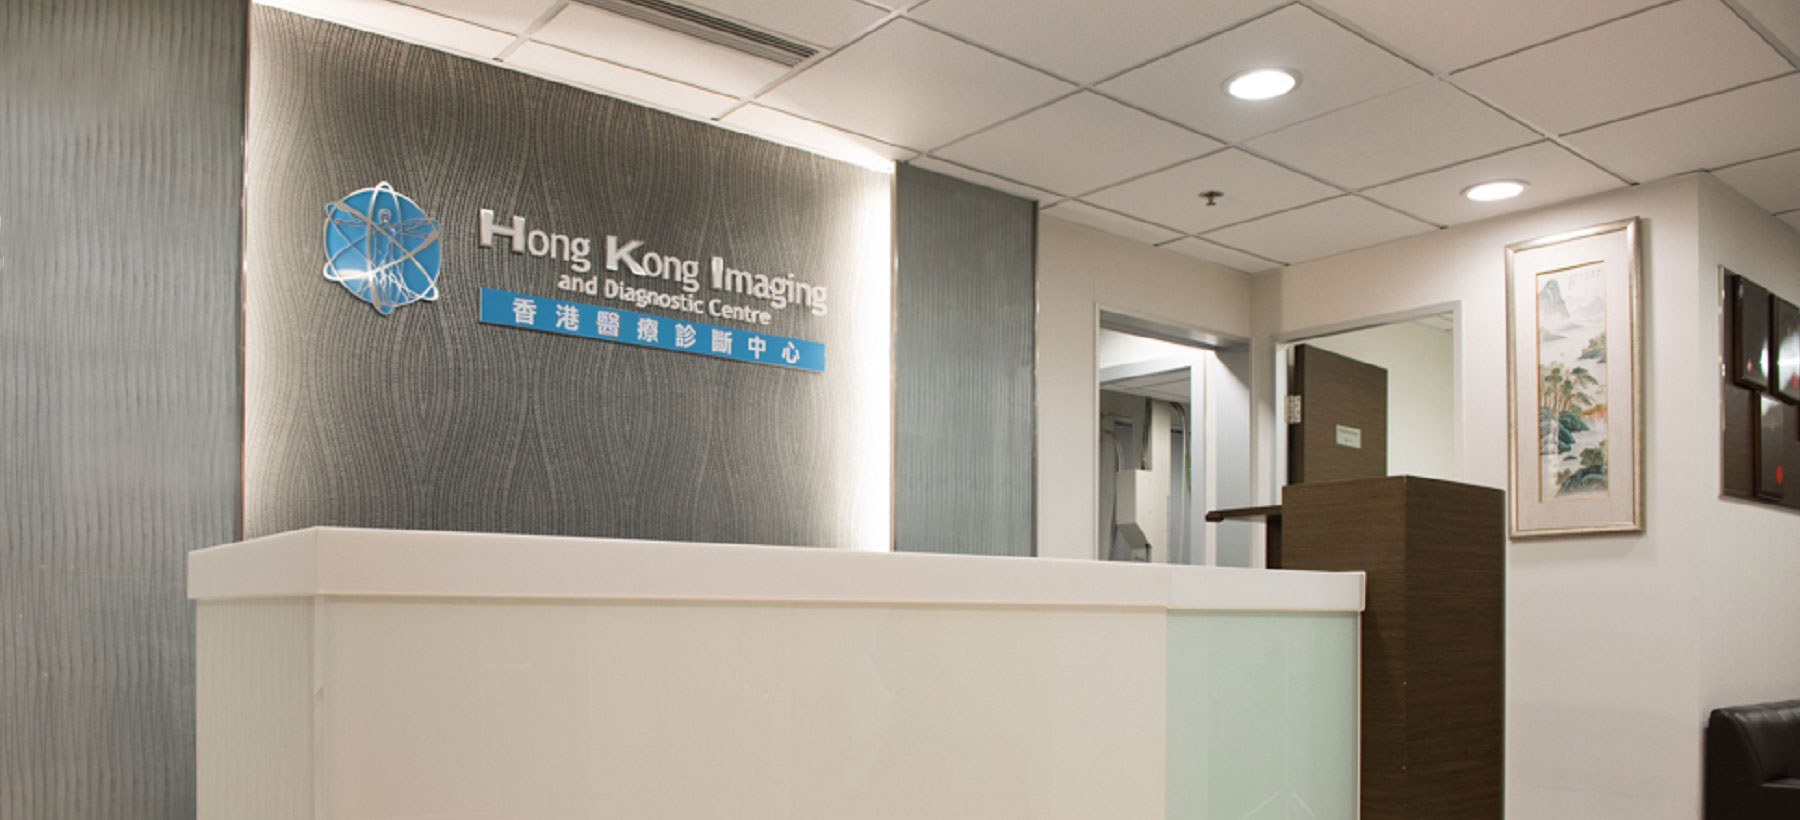 HK Imaging and Diagnostic Centre